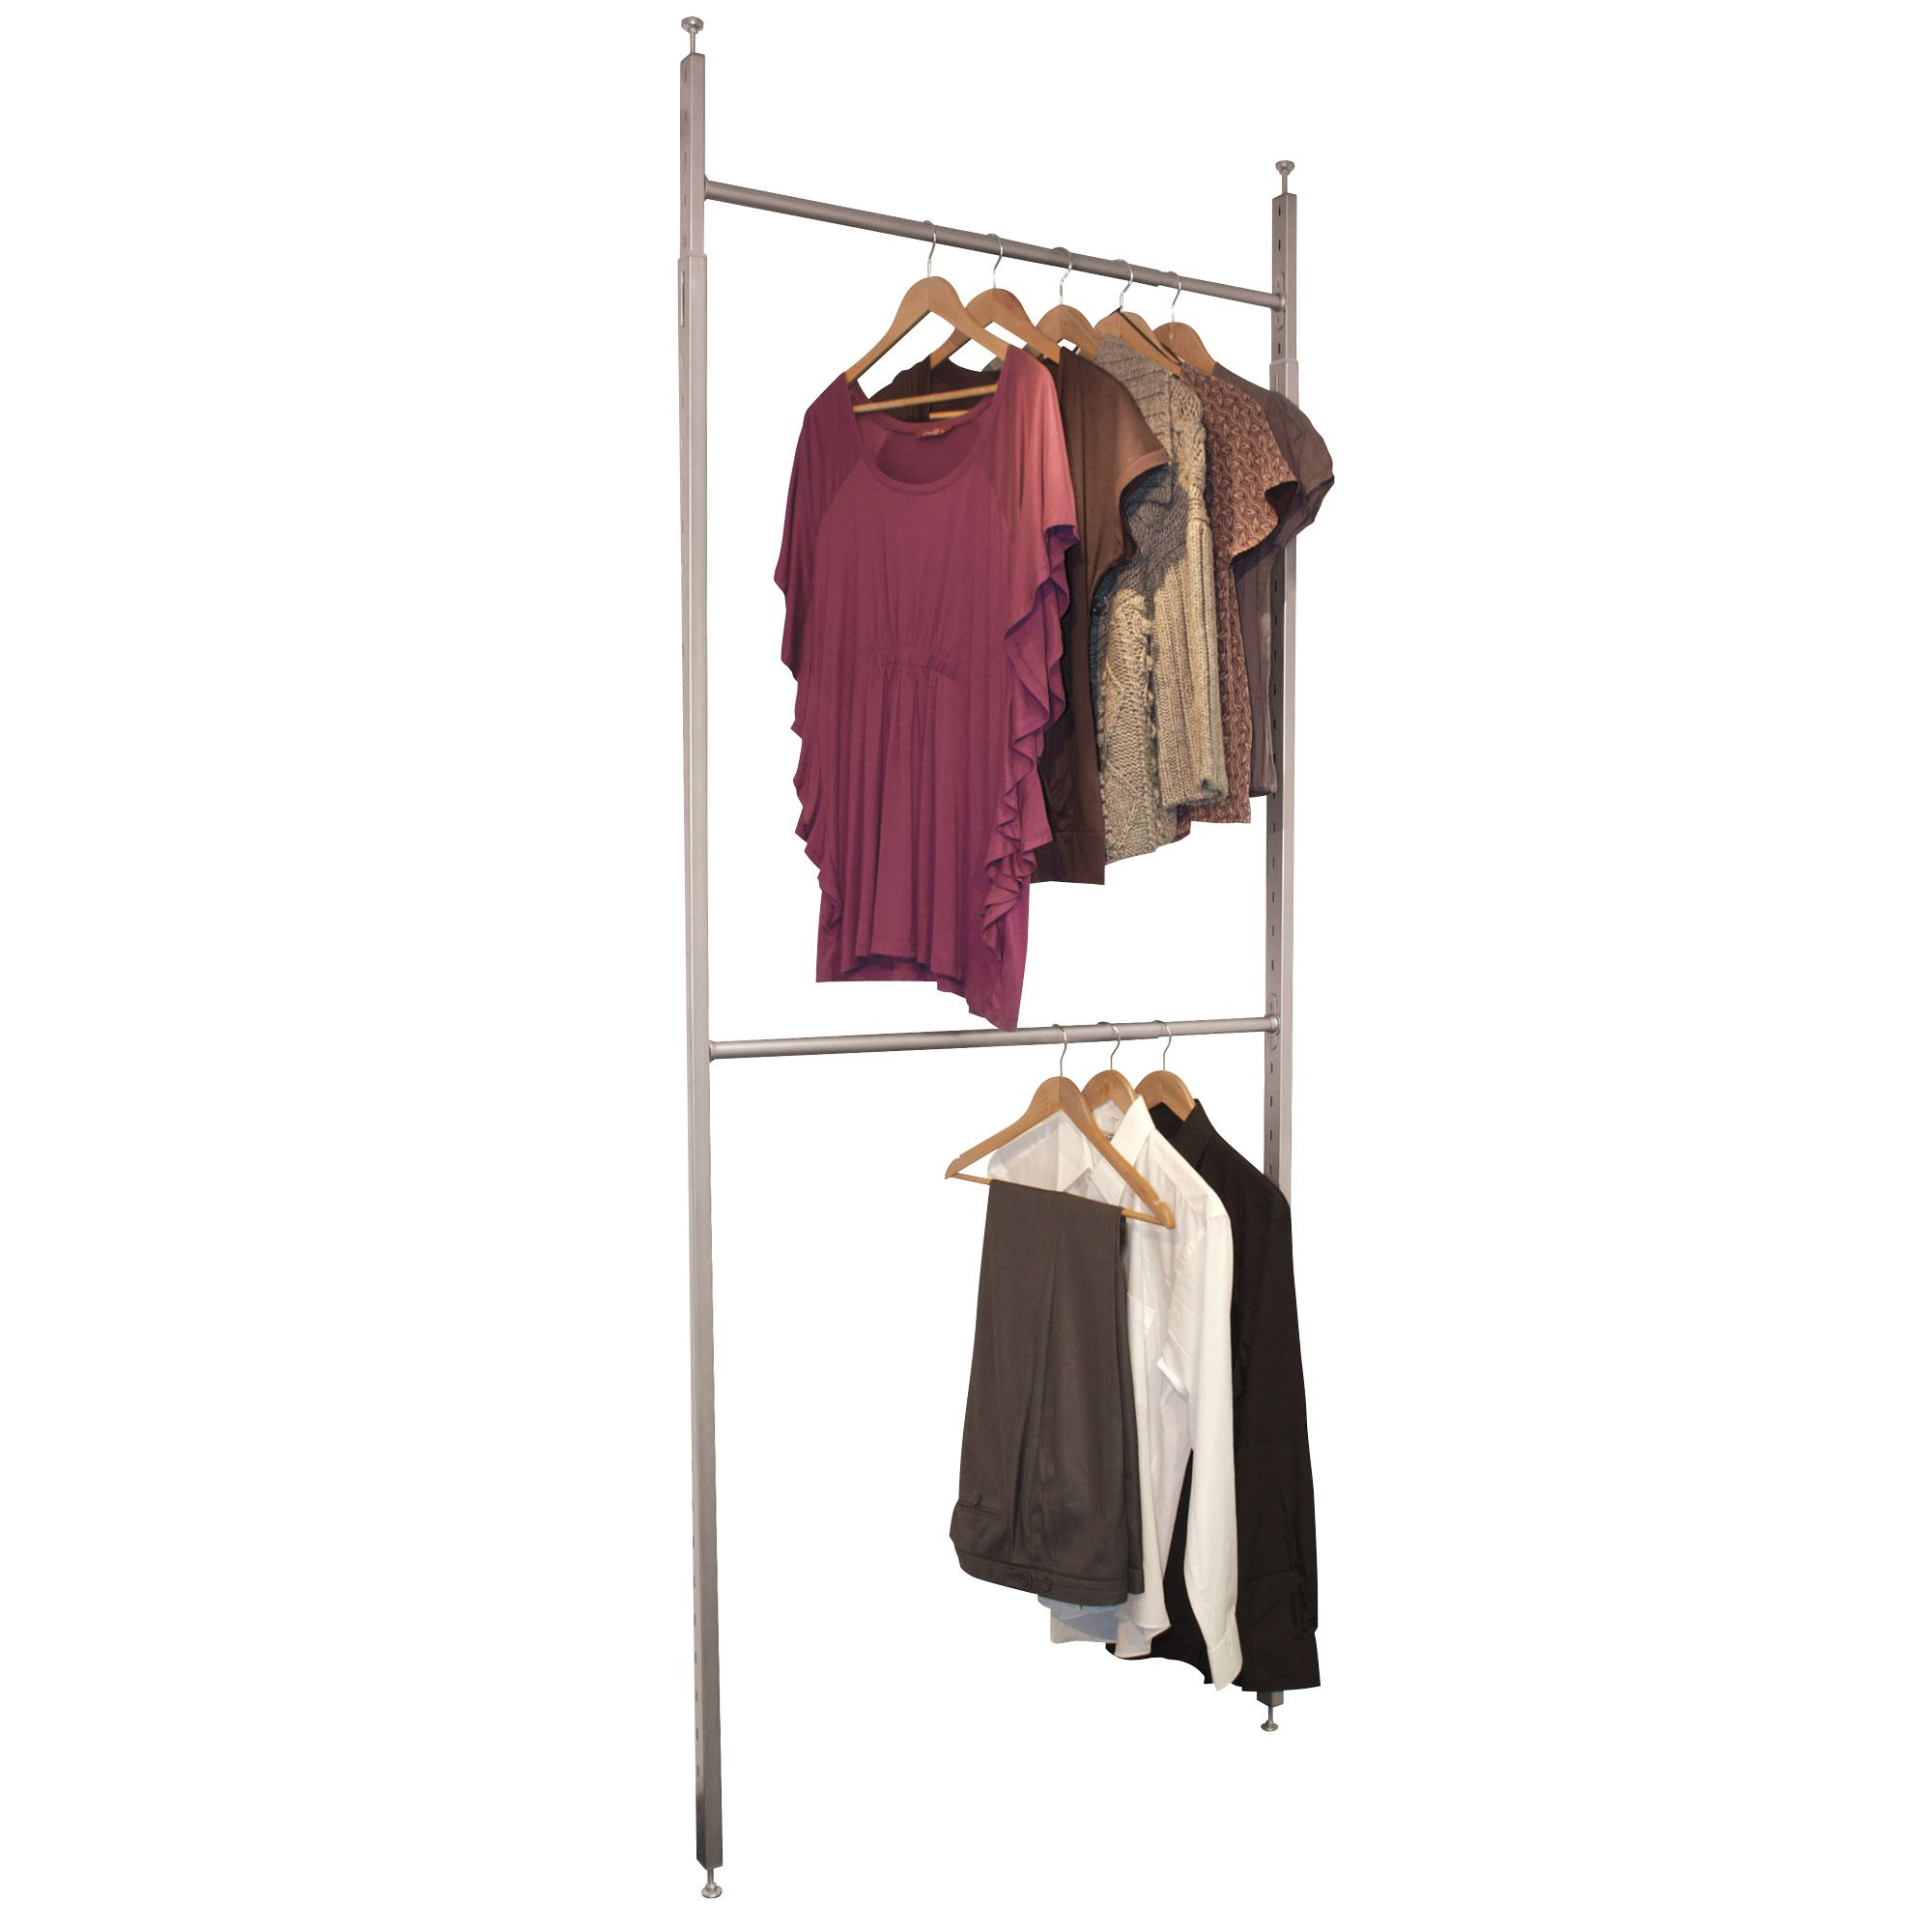 astonishing ideas portable inspiring idea wardrobe organizer for storage closets closet pretentious clothes perfect